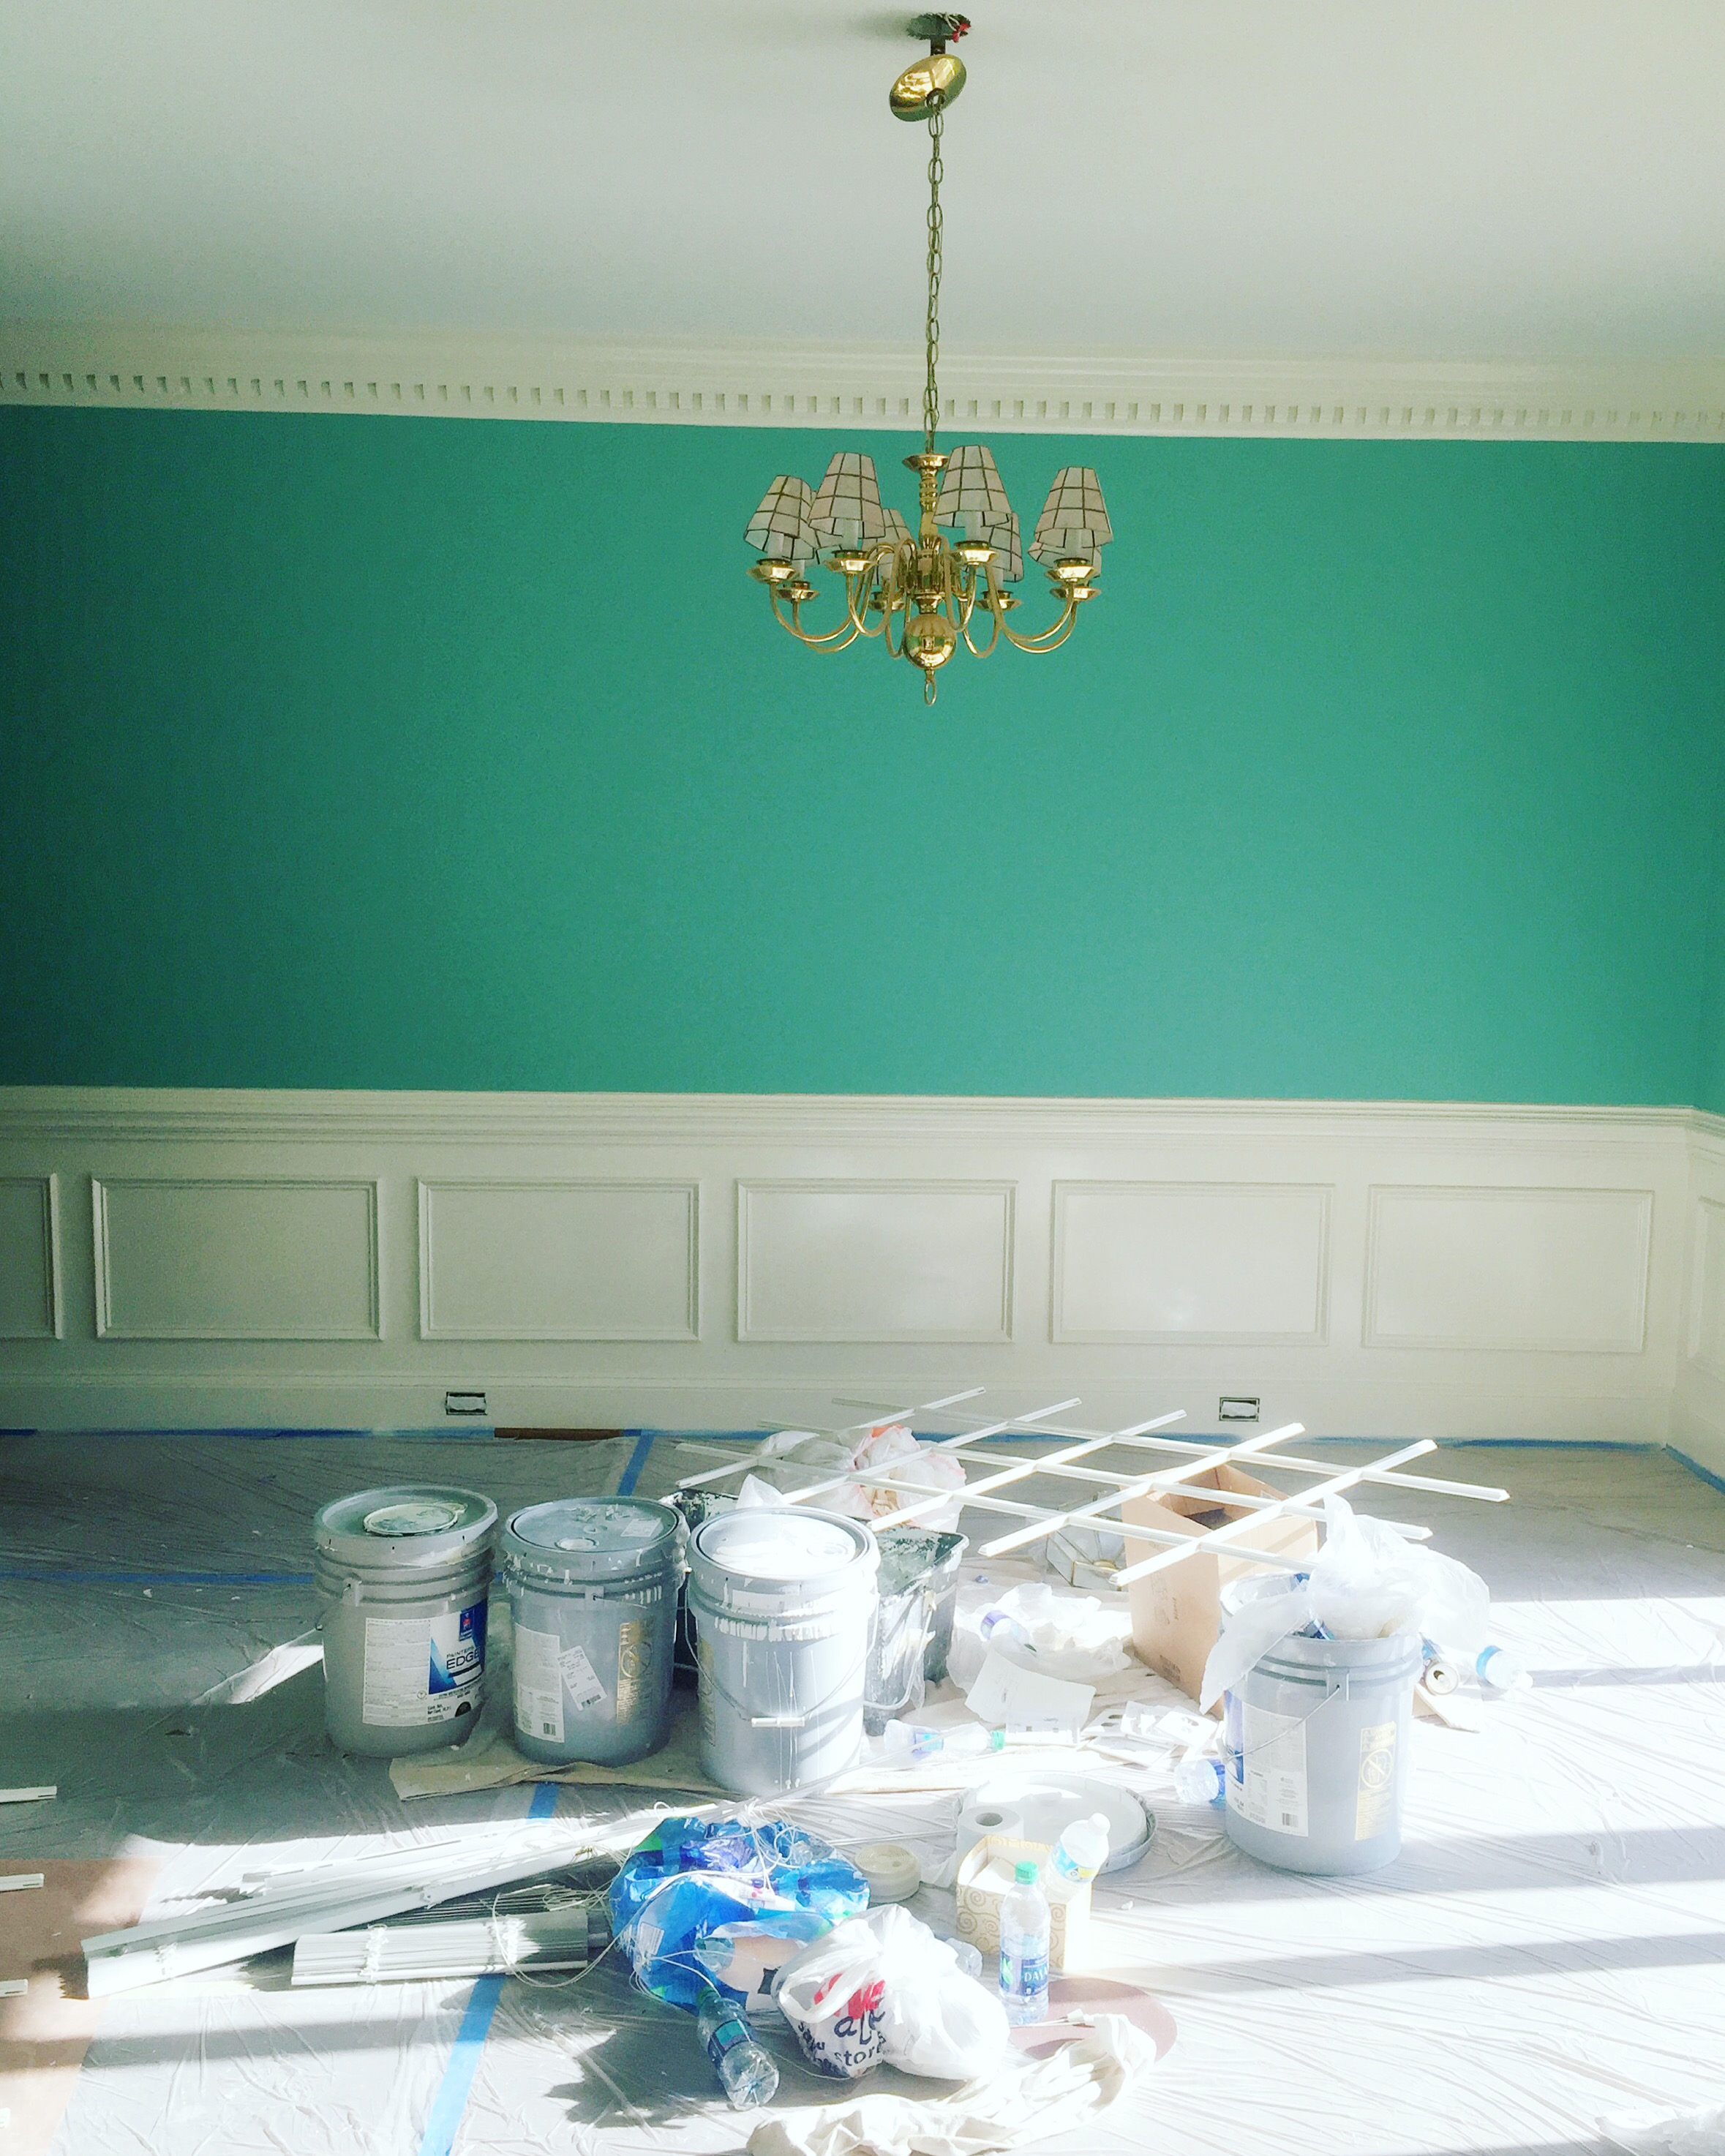 Dining room getting a fresh coat of sea foam green.